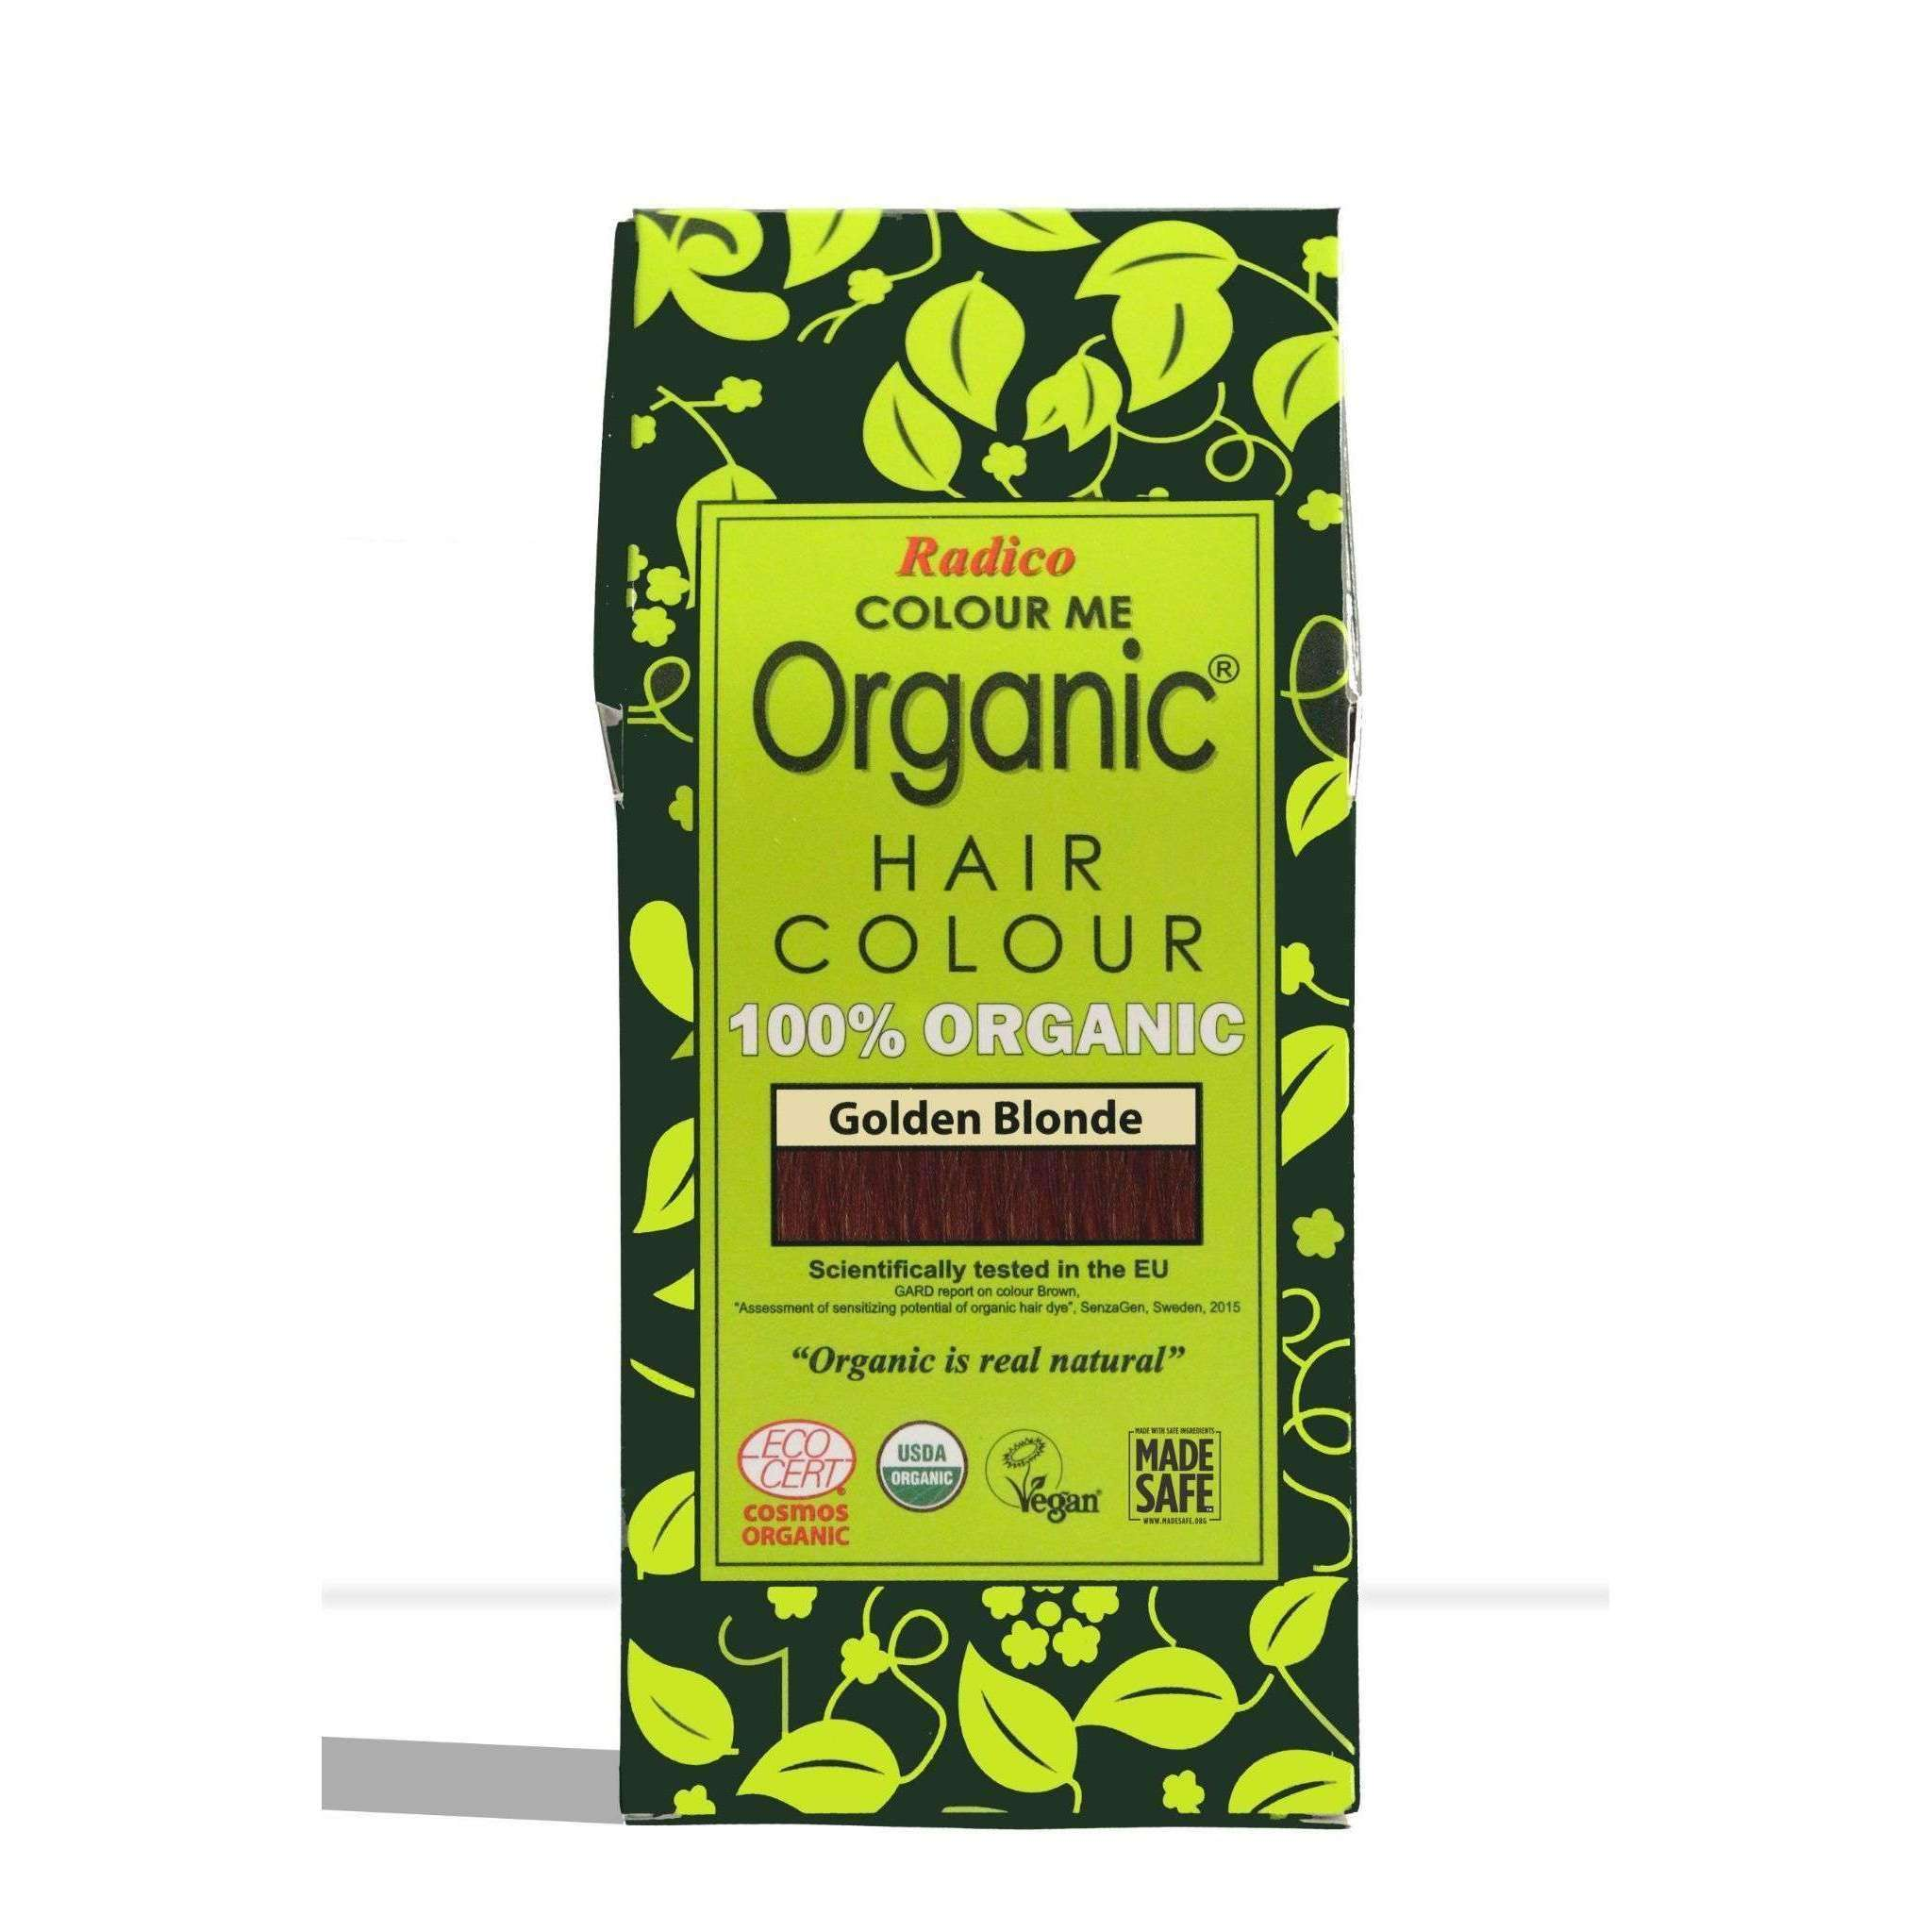 Radico Organic Hair Colour - Golden Blonde